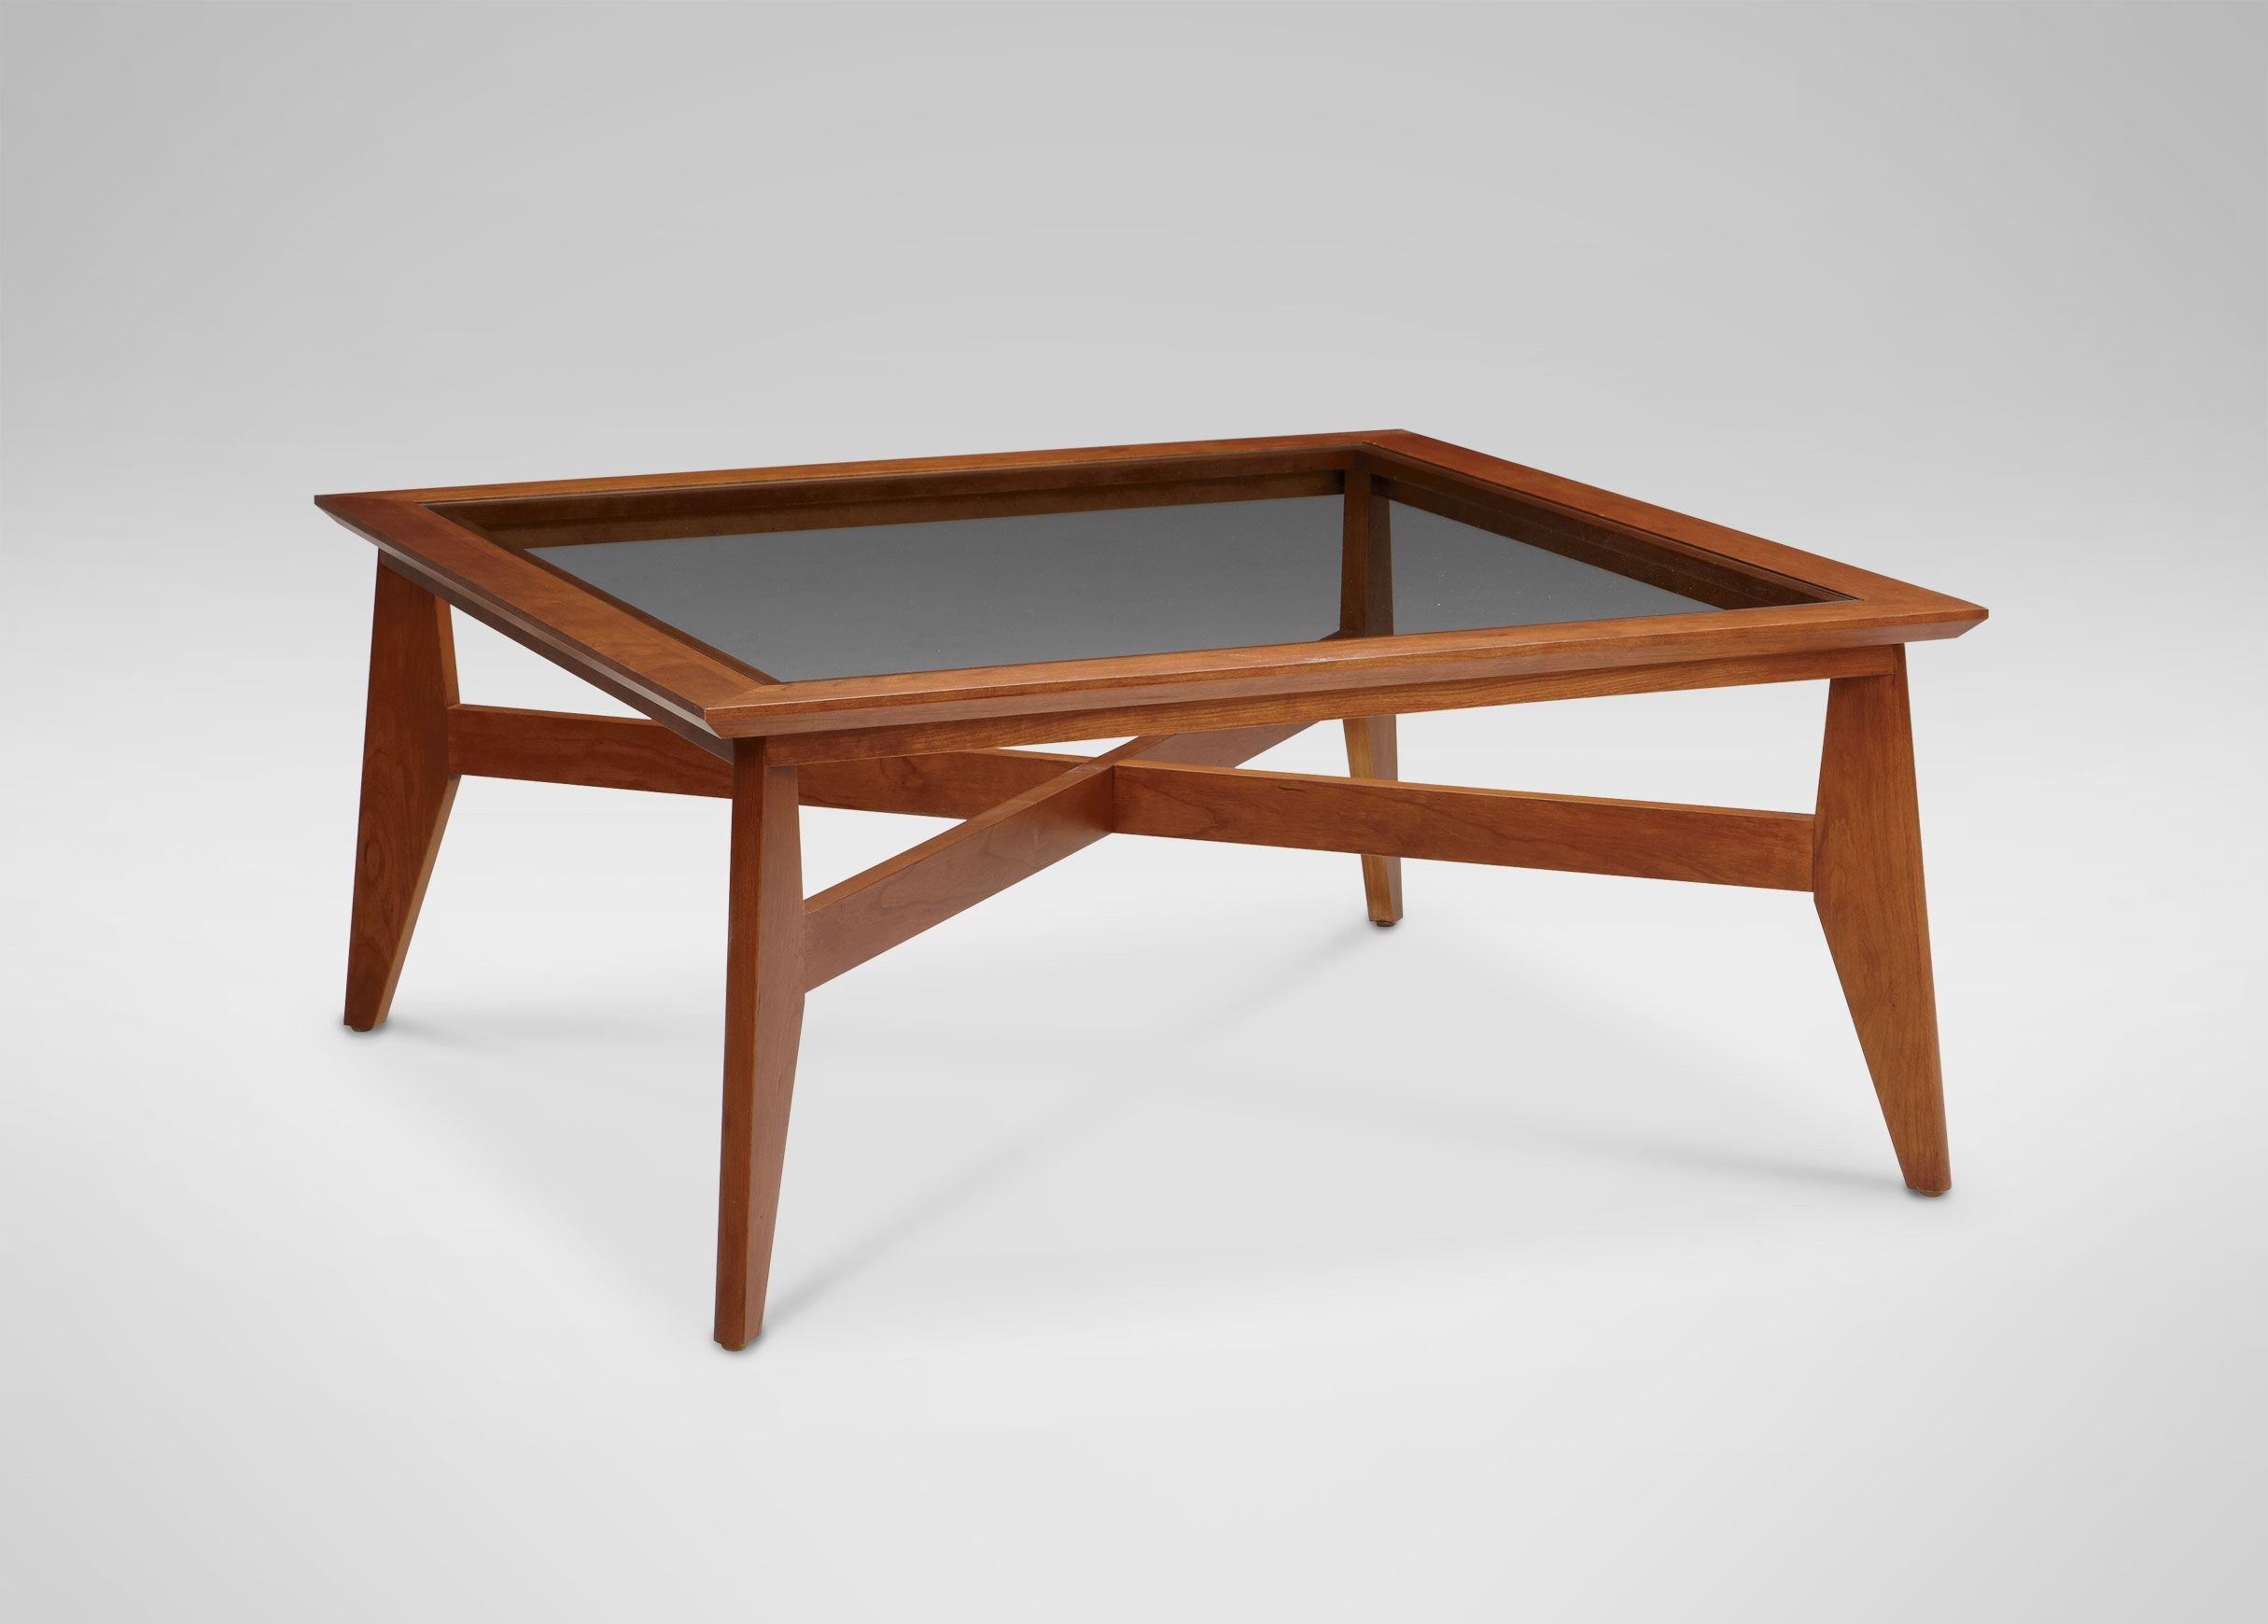 Ethan Allen Trevor Coffee Table Living Furniture Table Living